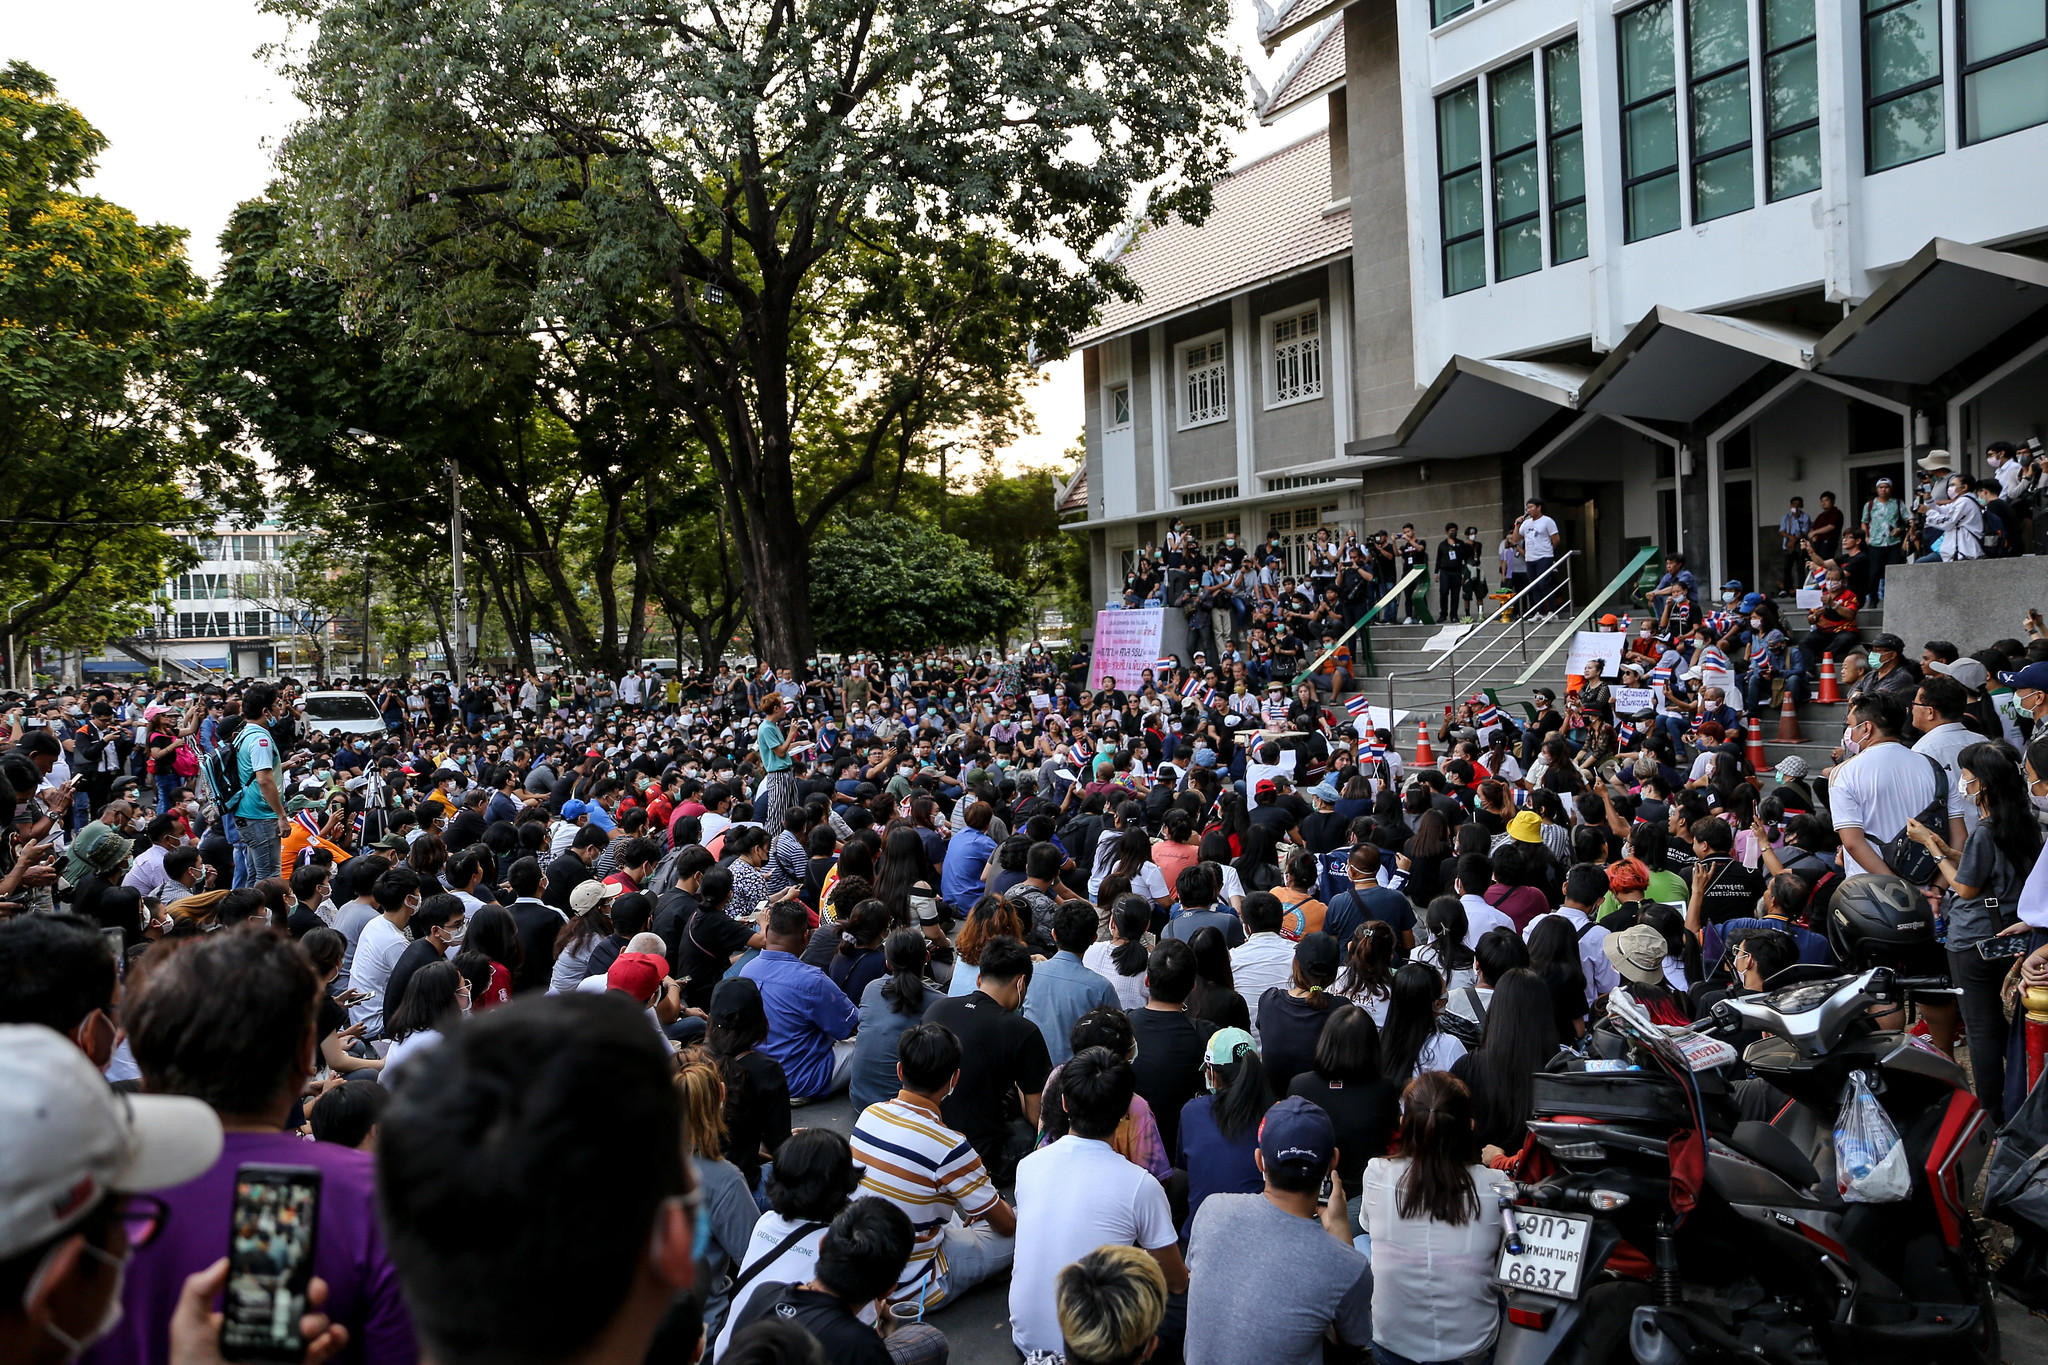 A wide shot of the demonstration at Kasetsart University early in the evening, showing a large group of participants gathering in front of the university auditorium.